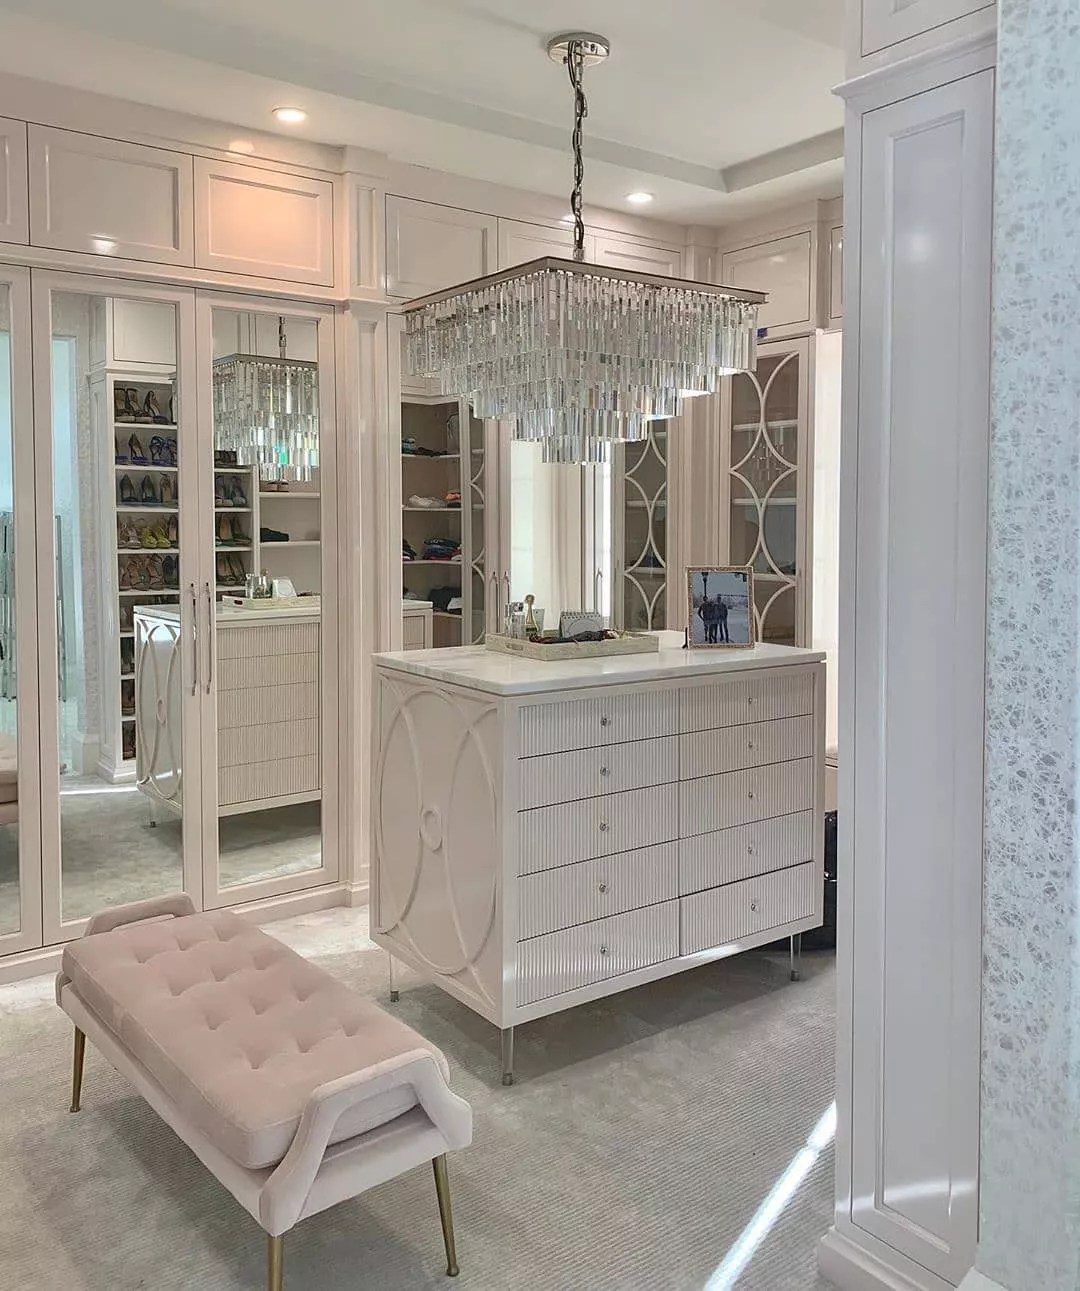 Contemporary walk-in luxury closet. Photo by Instagram user @cm.closetdesign